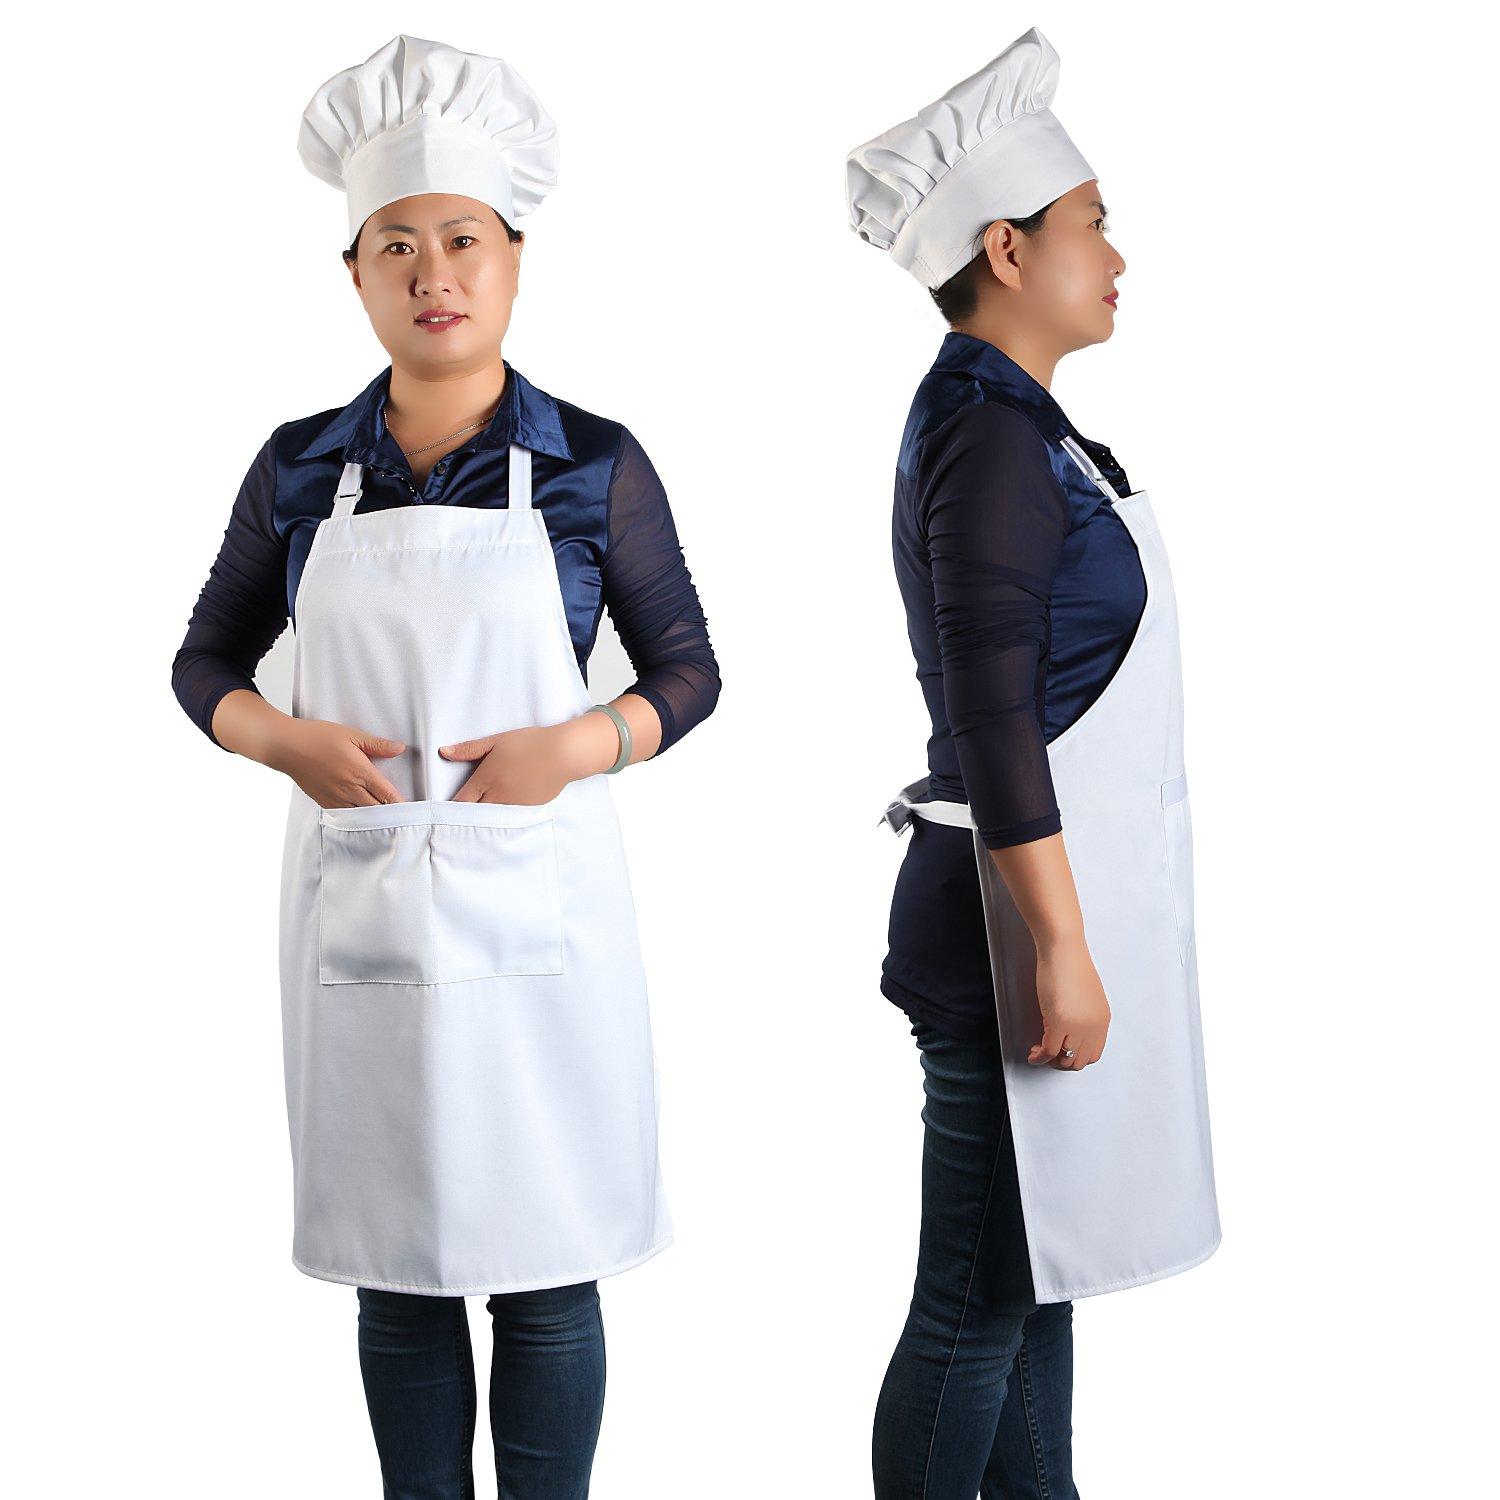 Chef Apron Set, Chef Hat and Kitchen Apron Adult Adjustable White Apron with Butcher Hat Baker Costume Kitchen Pocket Apron for Men & Women, 1 Set White by yotache (Image #2)